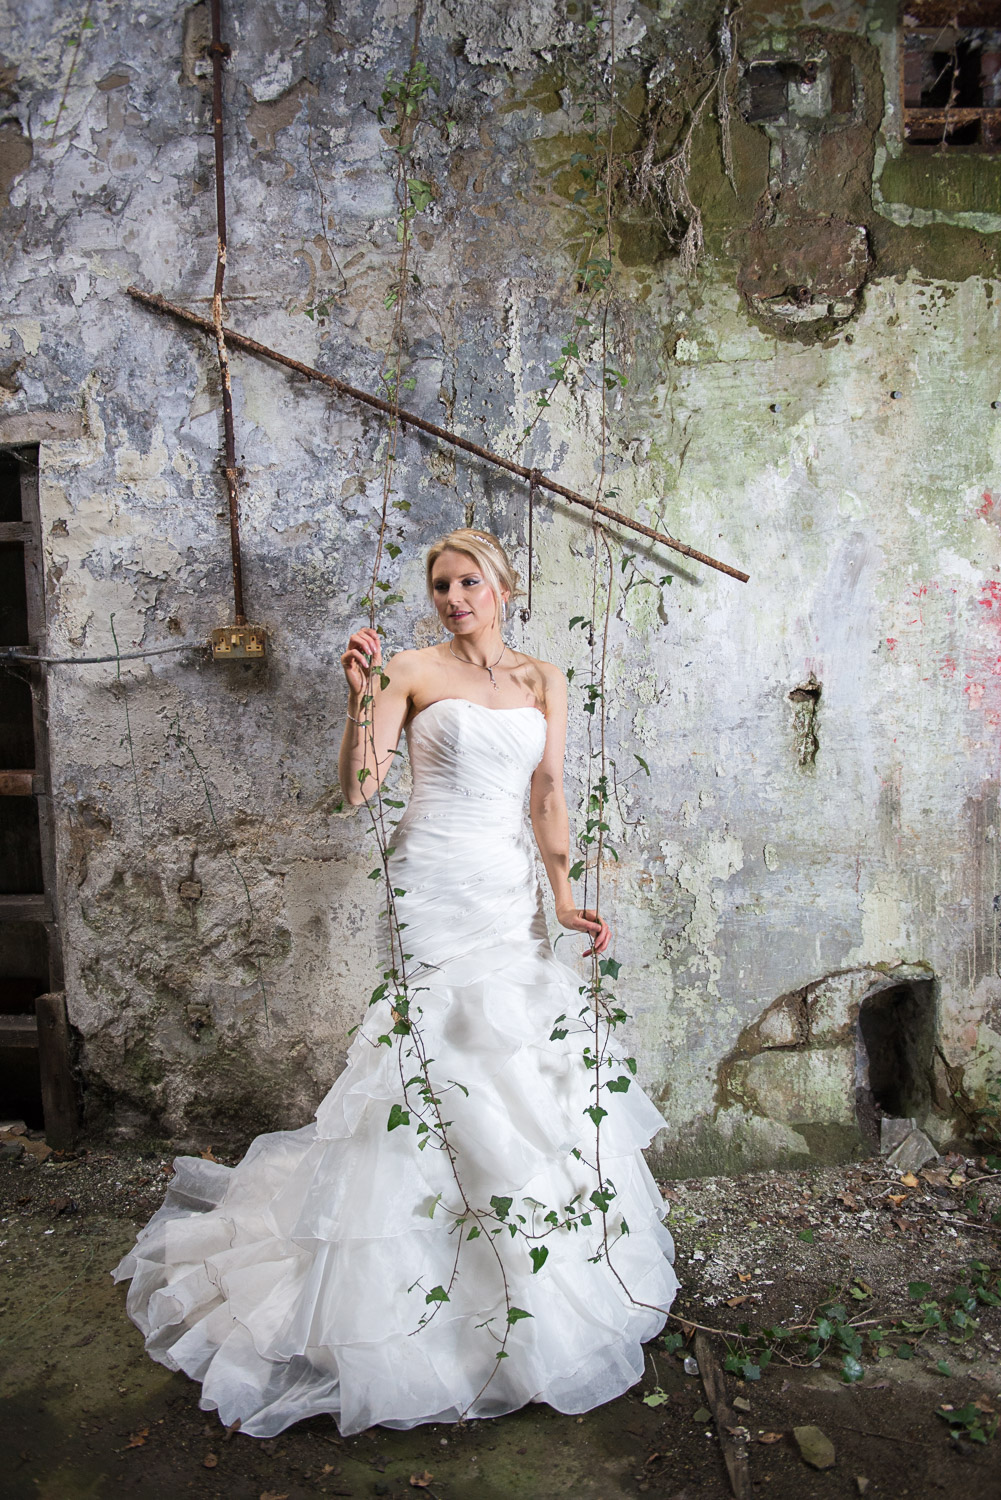 Styled photo shoot of a bride in an abandoned mill